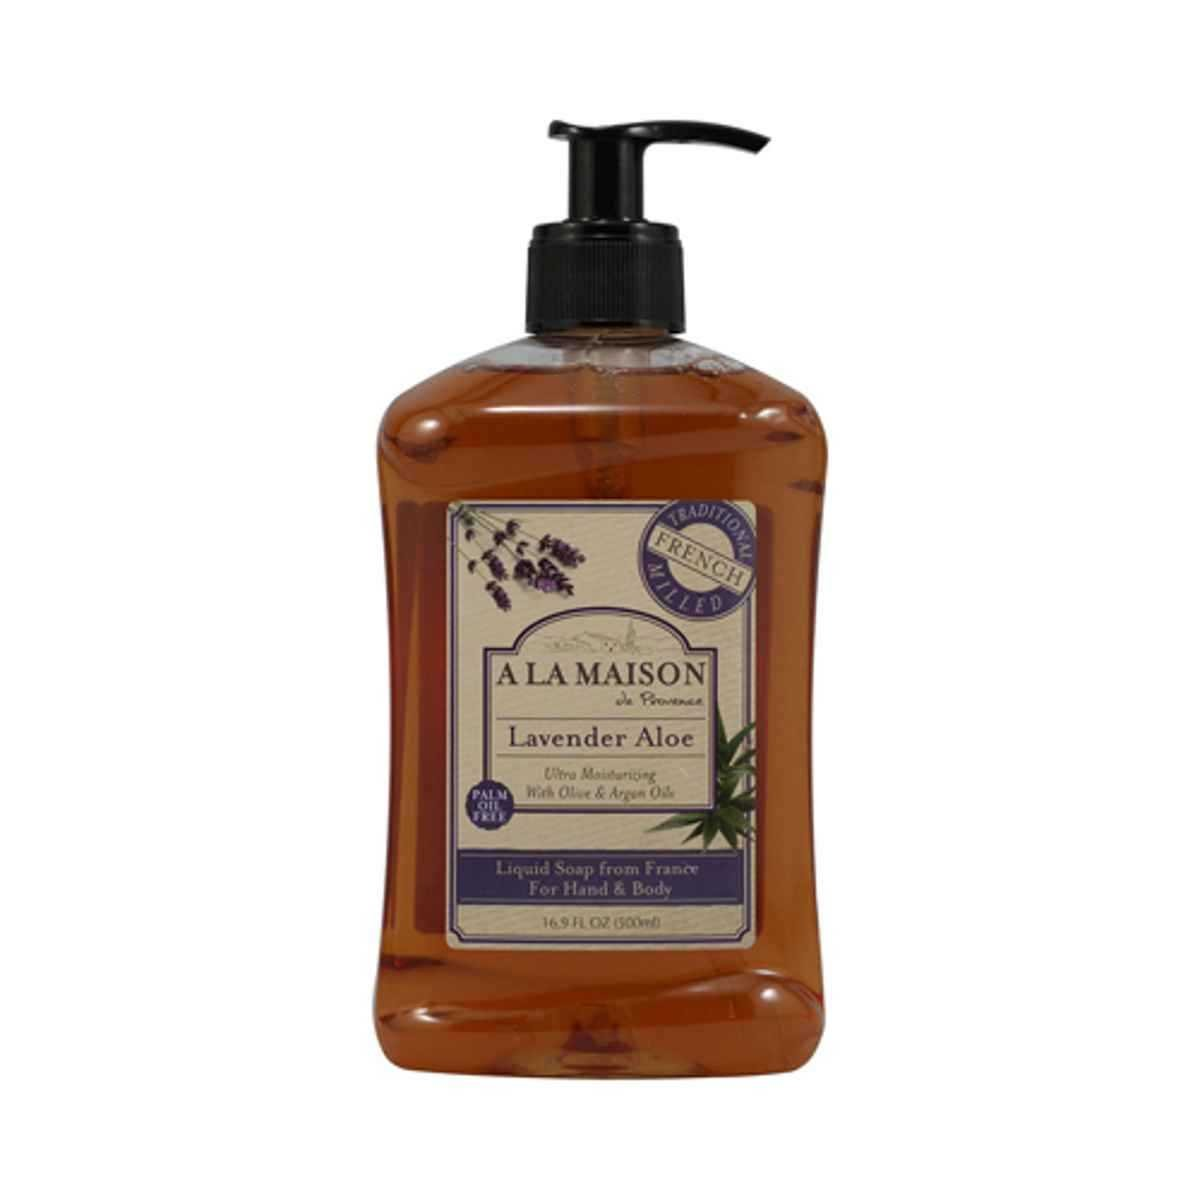 A la maison french liquid soap rosemary mint for A la maison french liquid soap